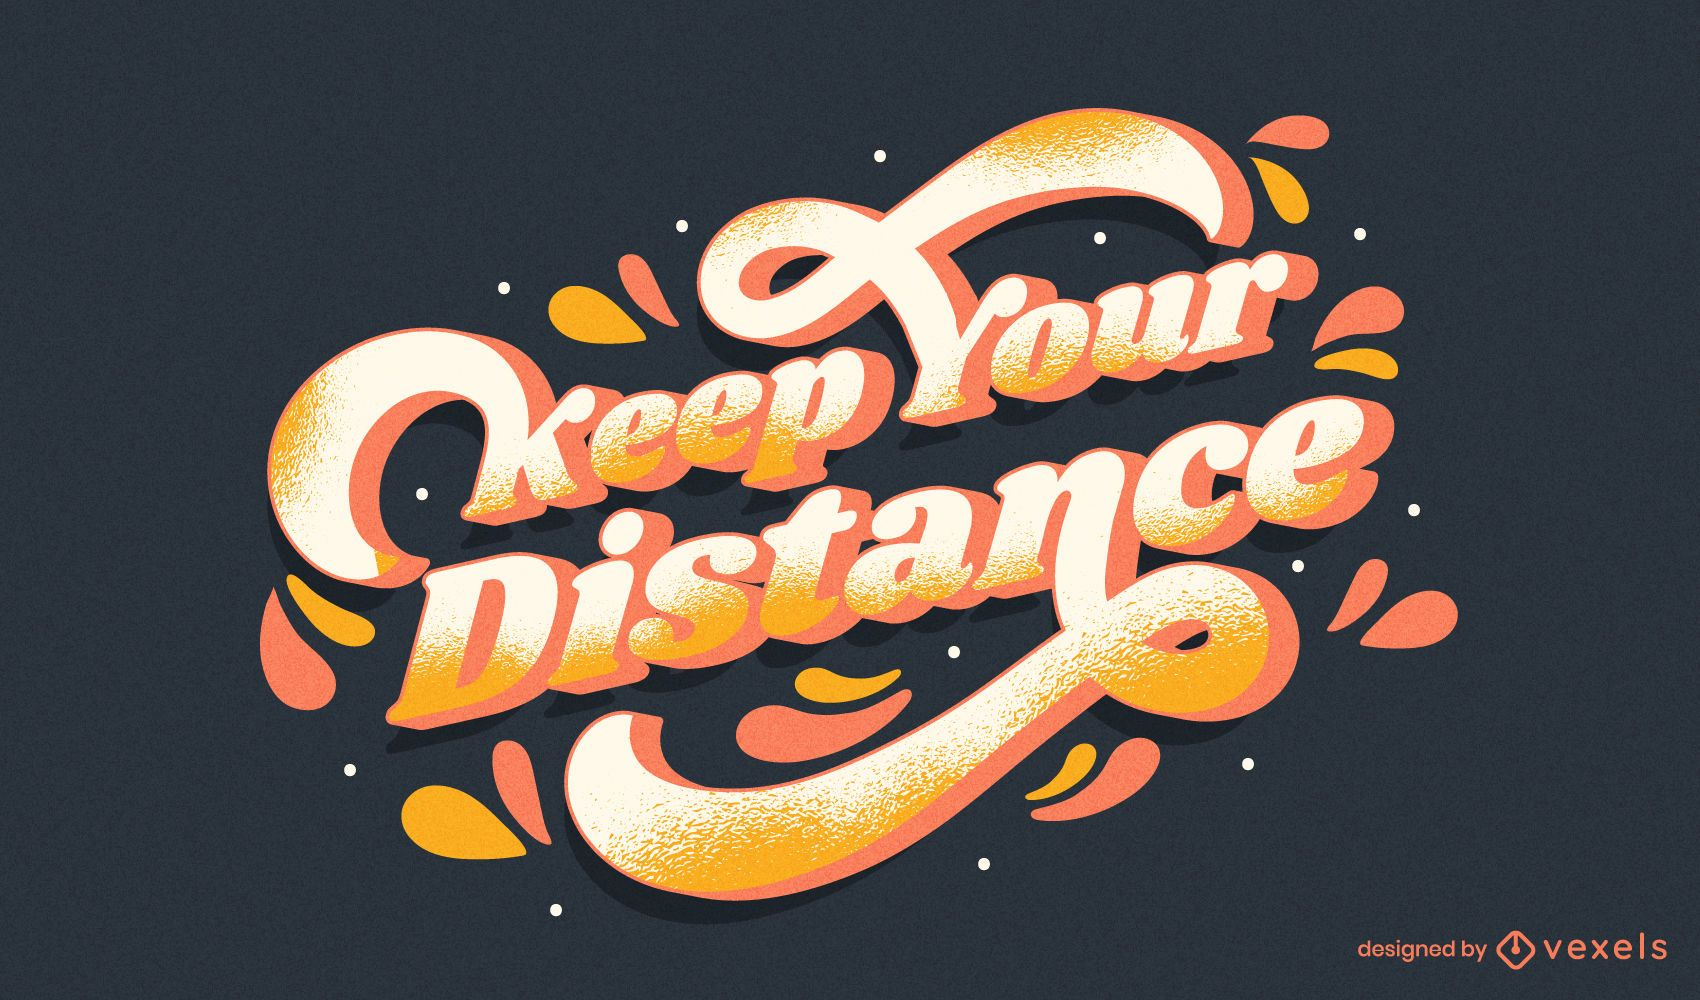 Keep your distance lettering design